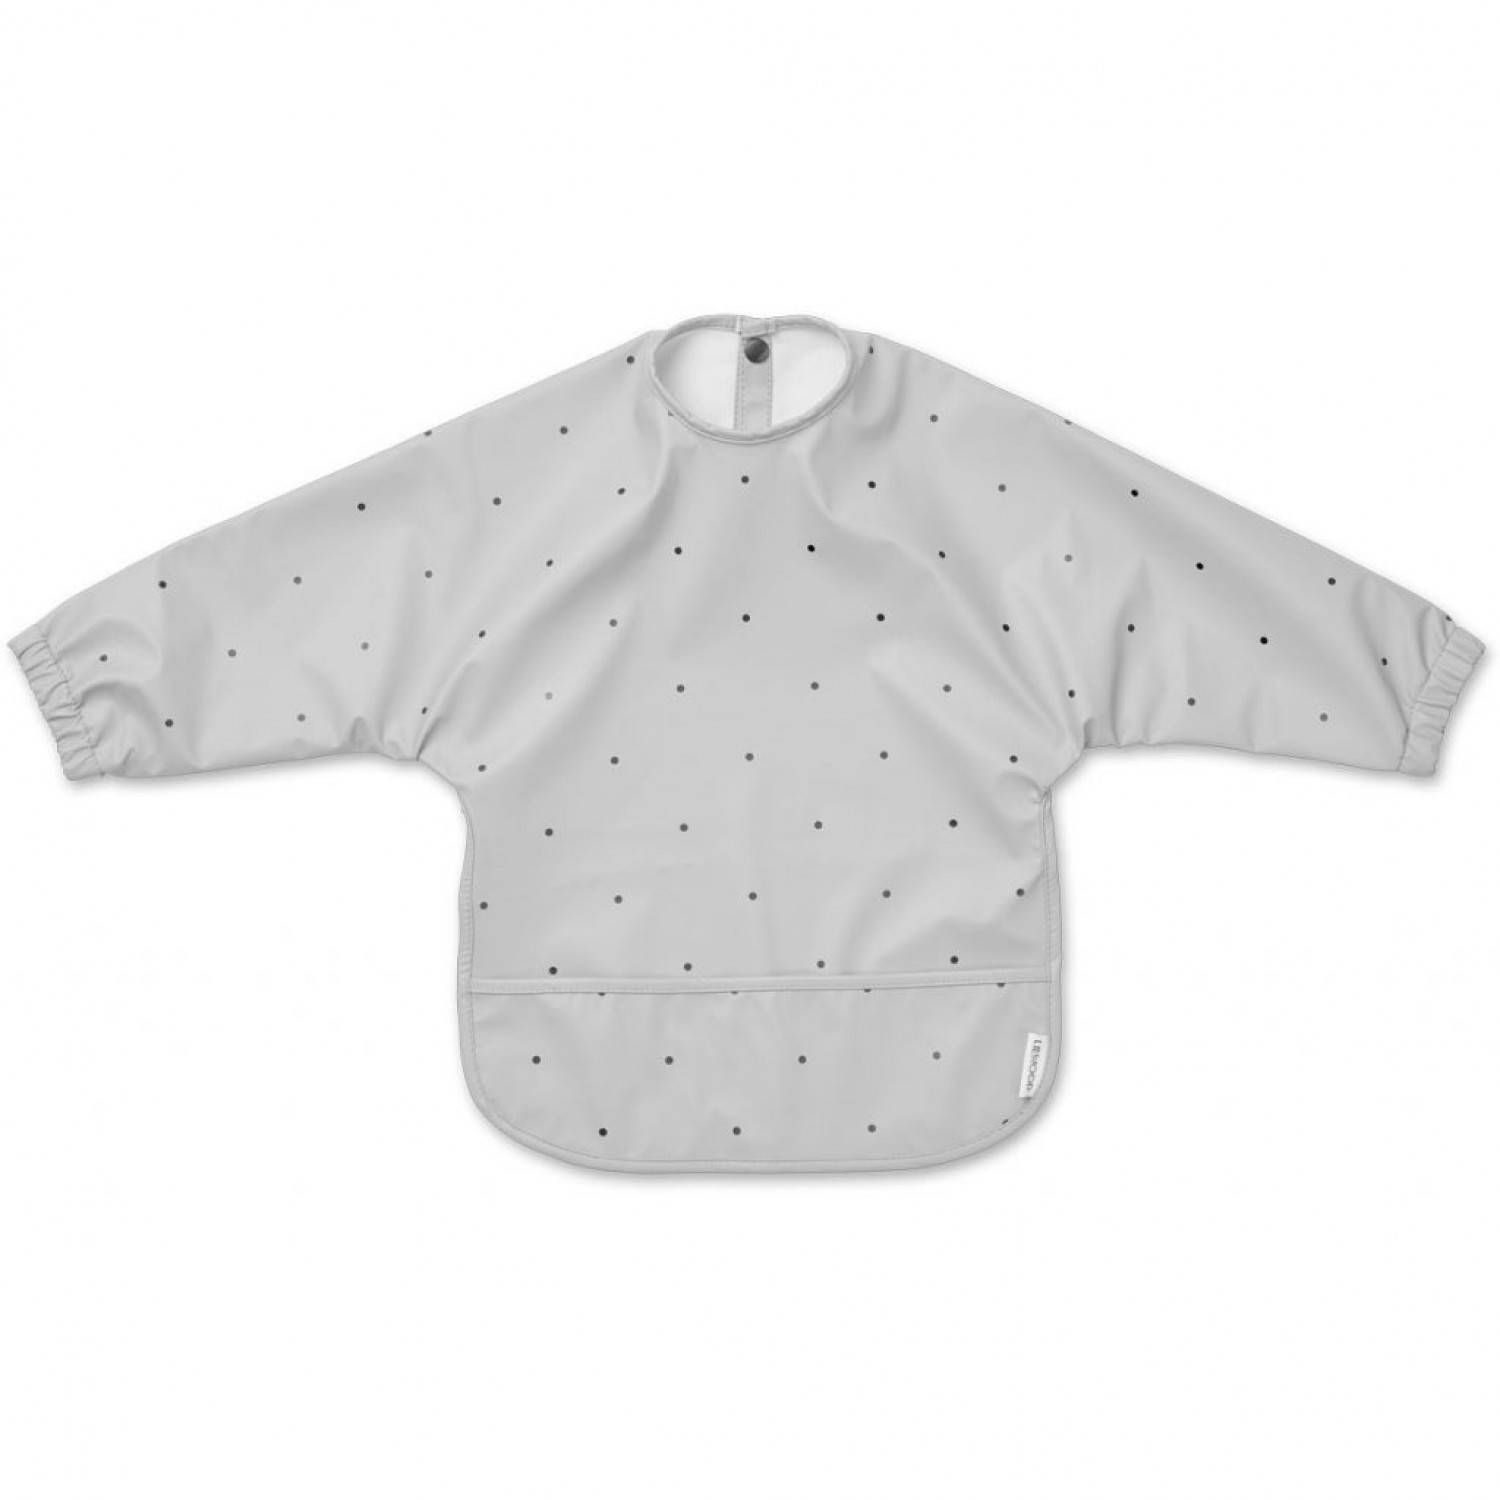 Bib Merle | Dumbo Grey